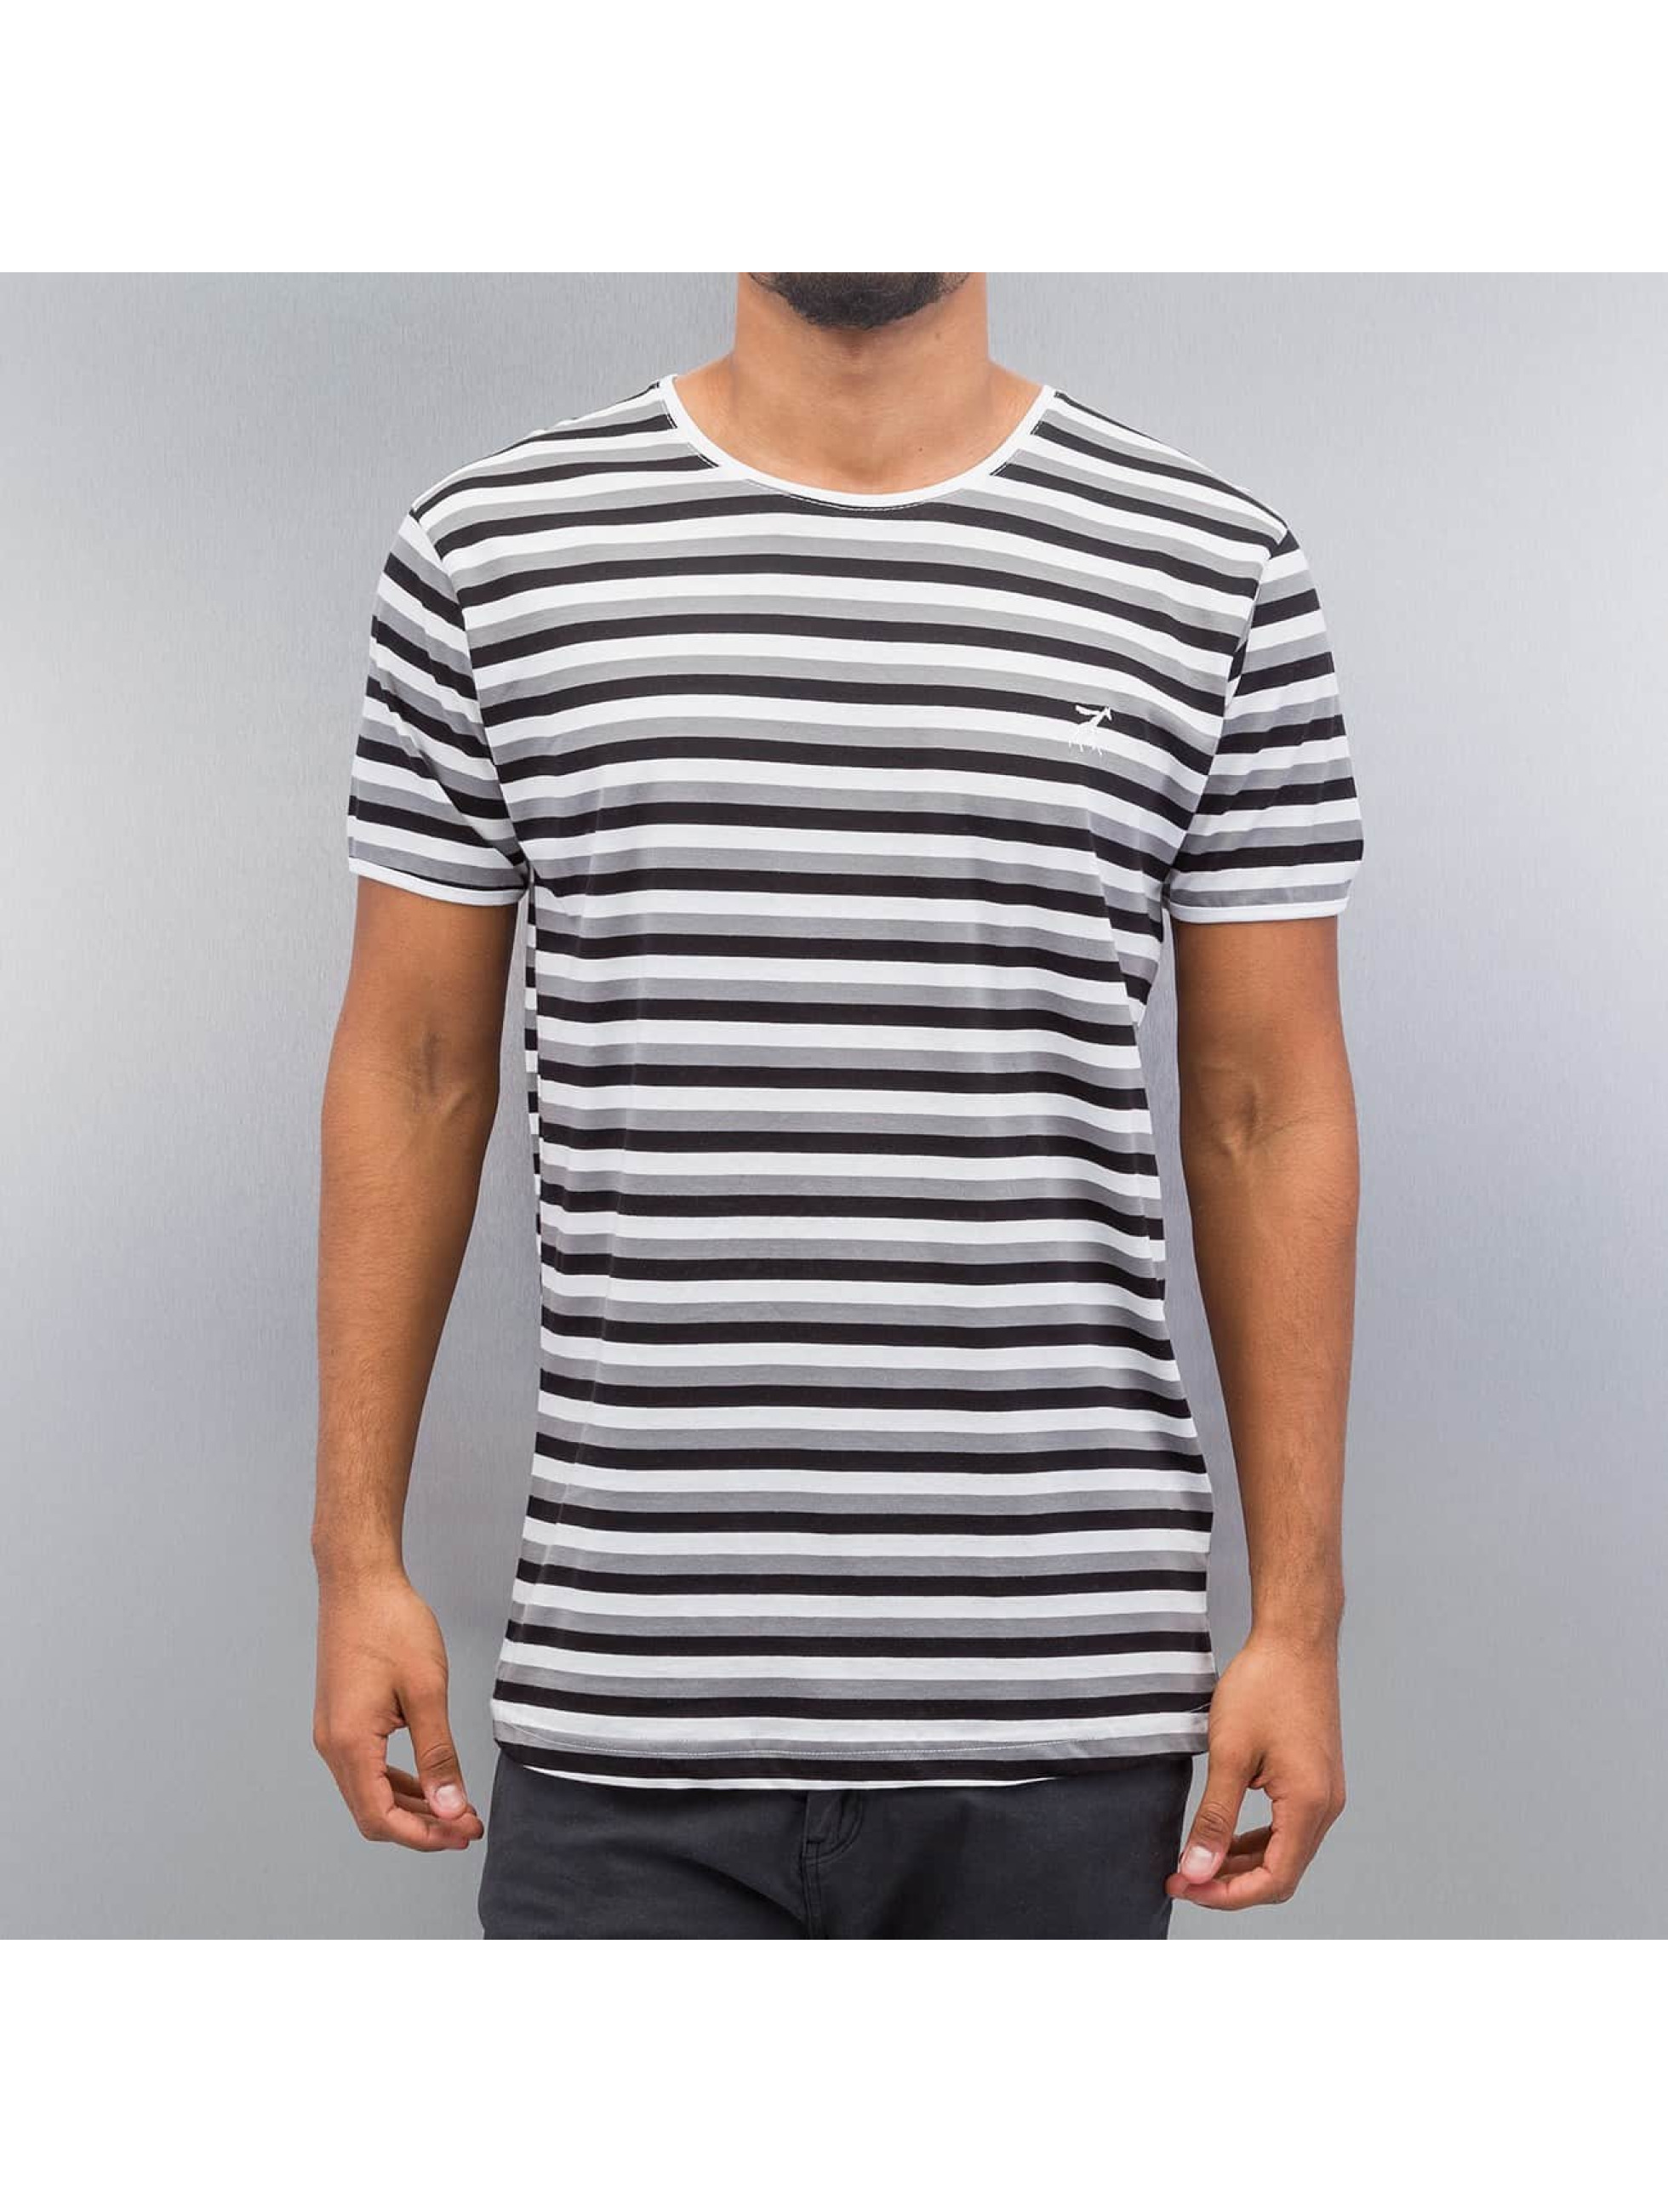 Cazzy Clang Männer T-Shirt Super Stripes in weiß